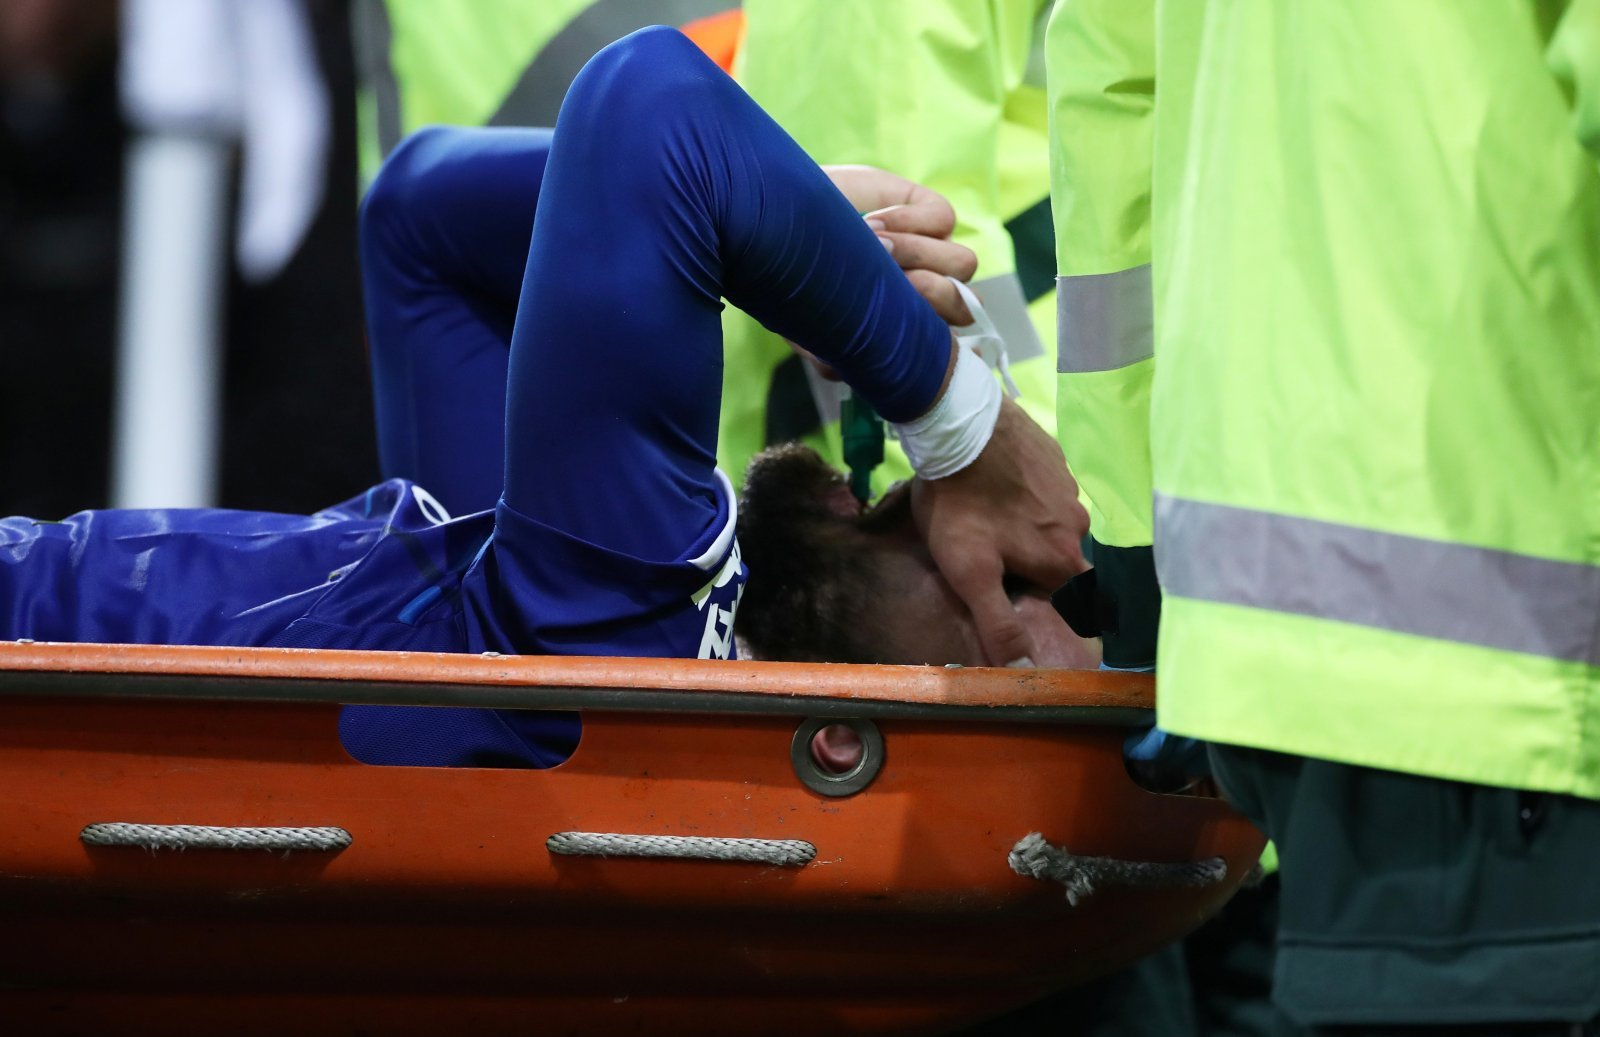 Everton: Fans relieved as Andre Gomes undergoes successful surgery on his ankle